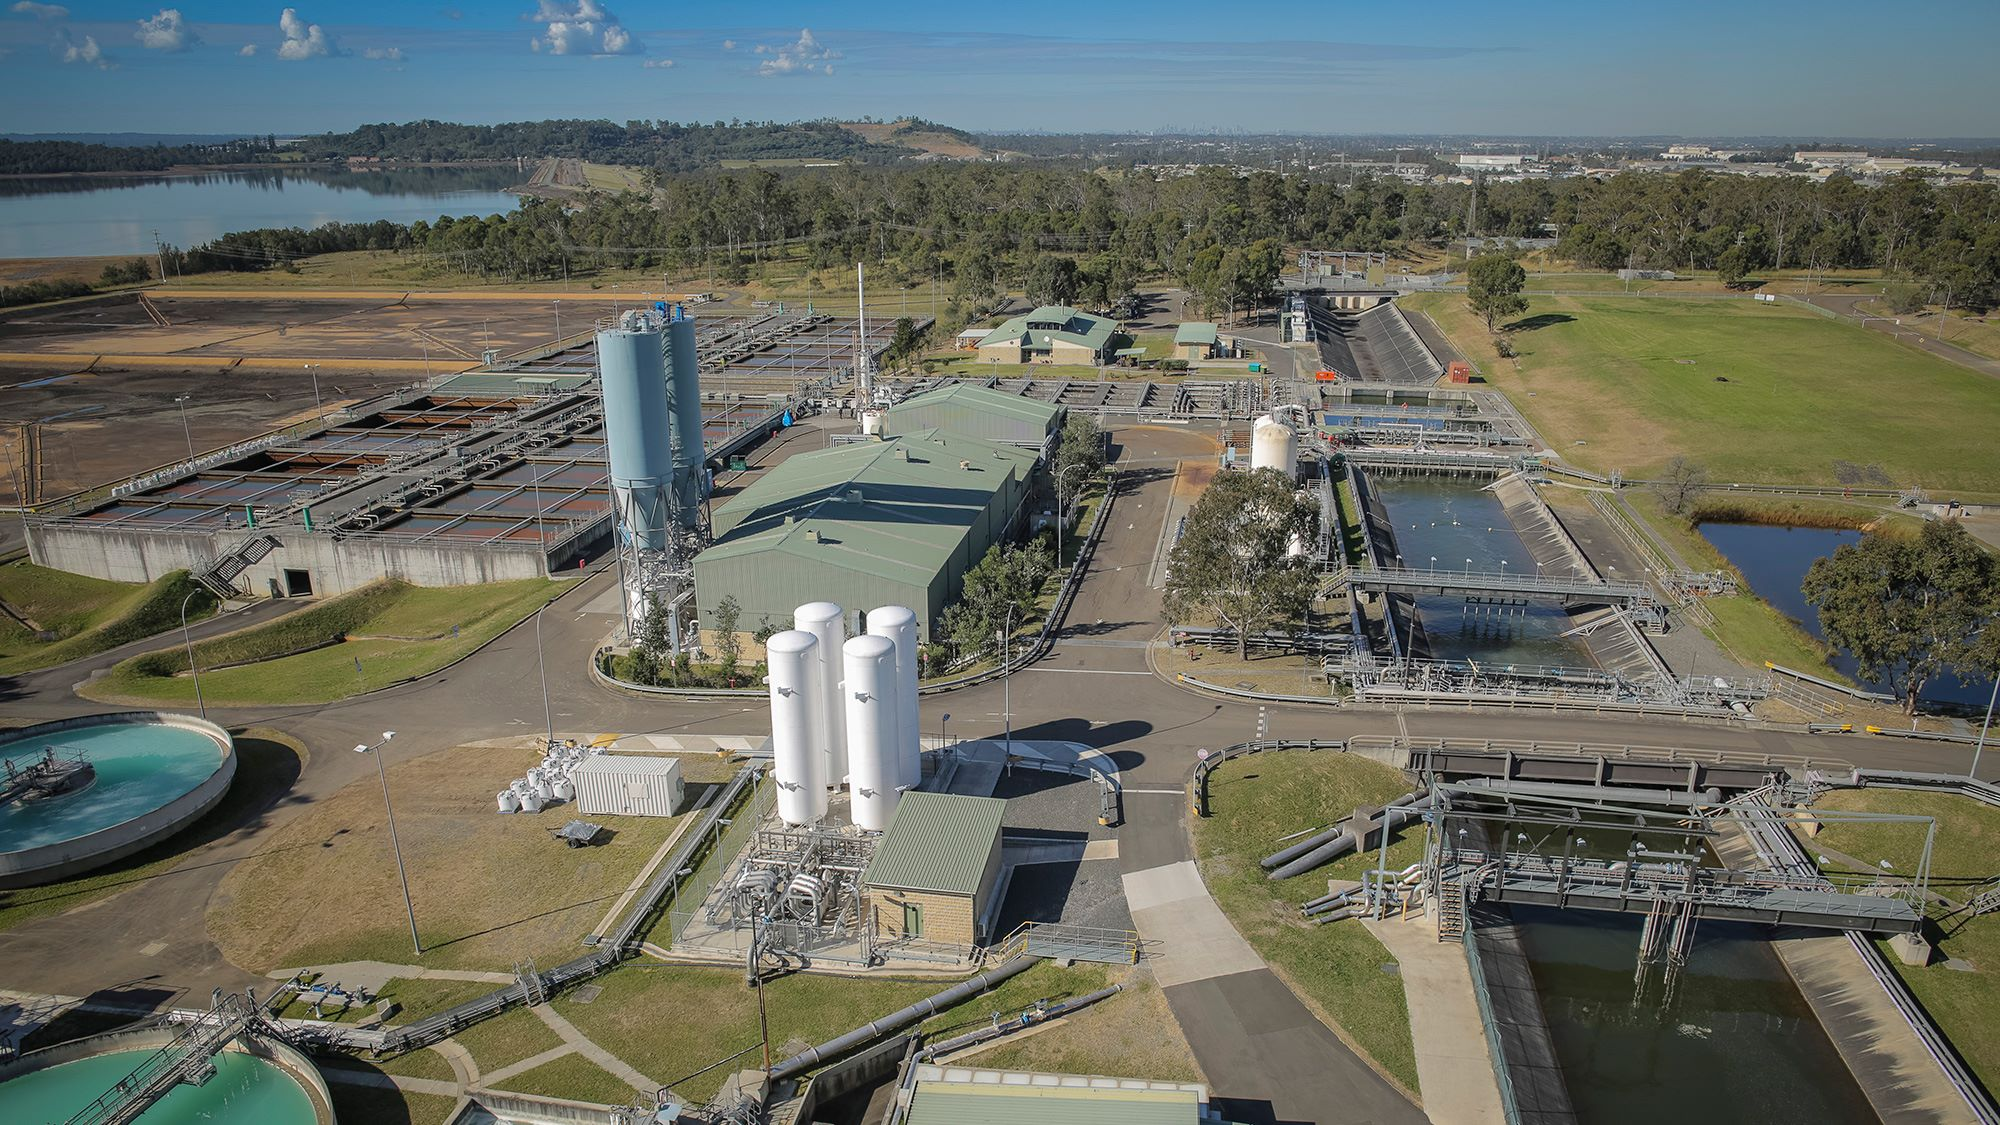 Aerial view of Prospect Water Treatment Plant, Sydney